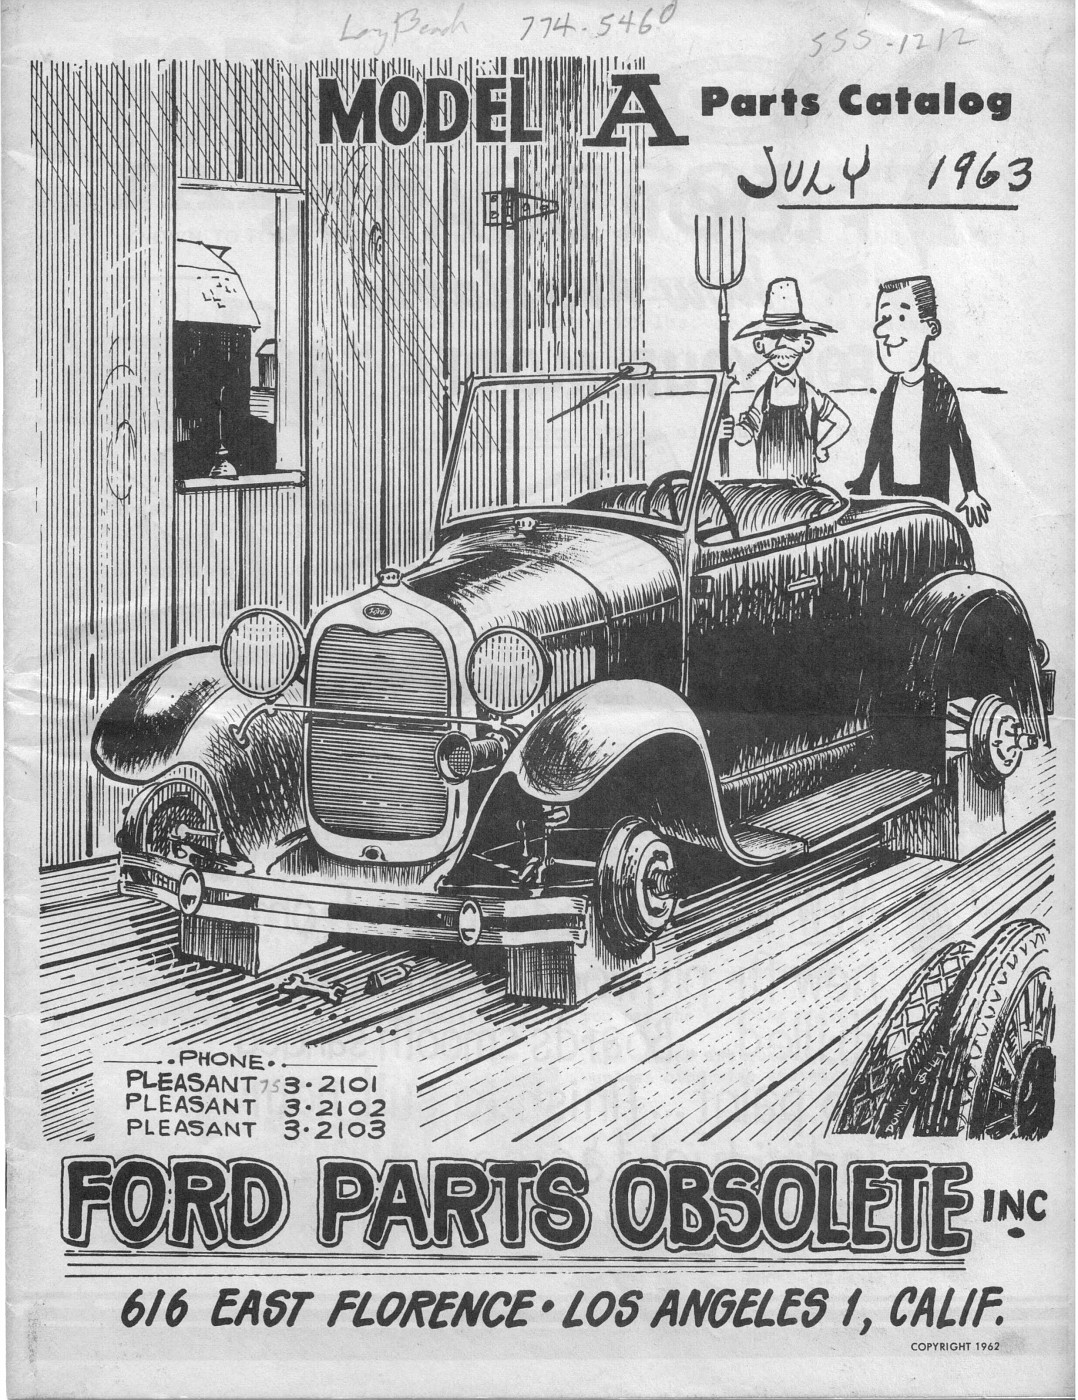 ford parts obsolete long beach  catalog  ford barn